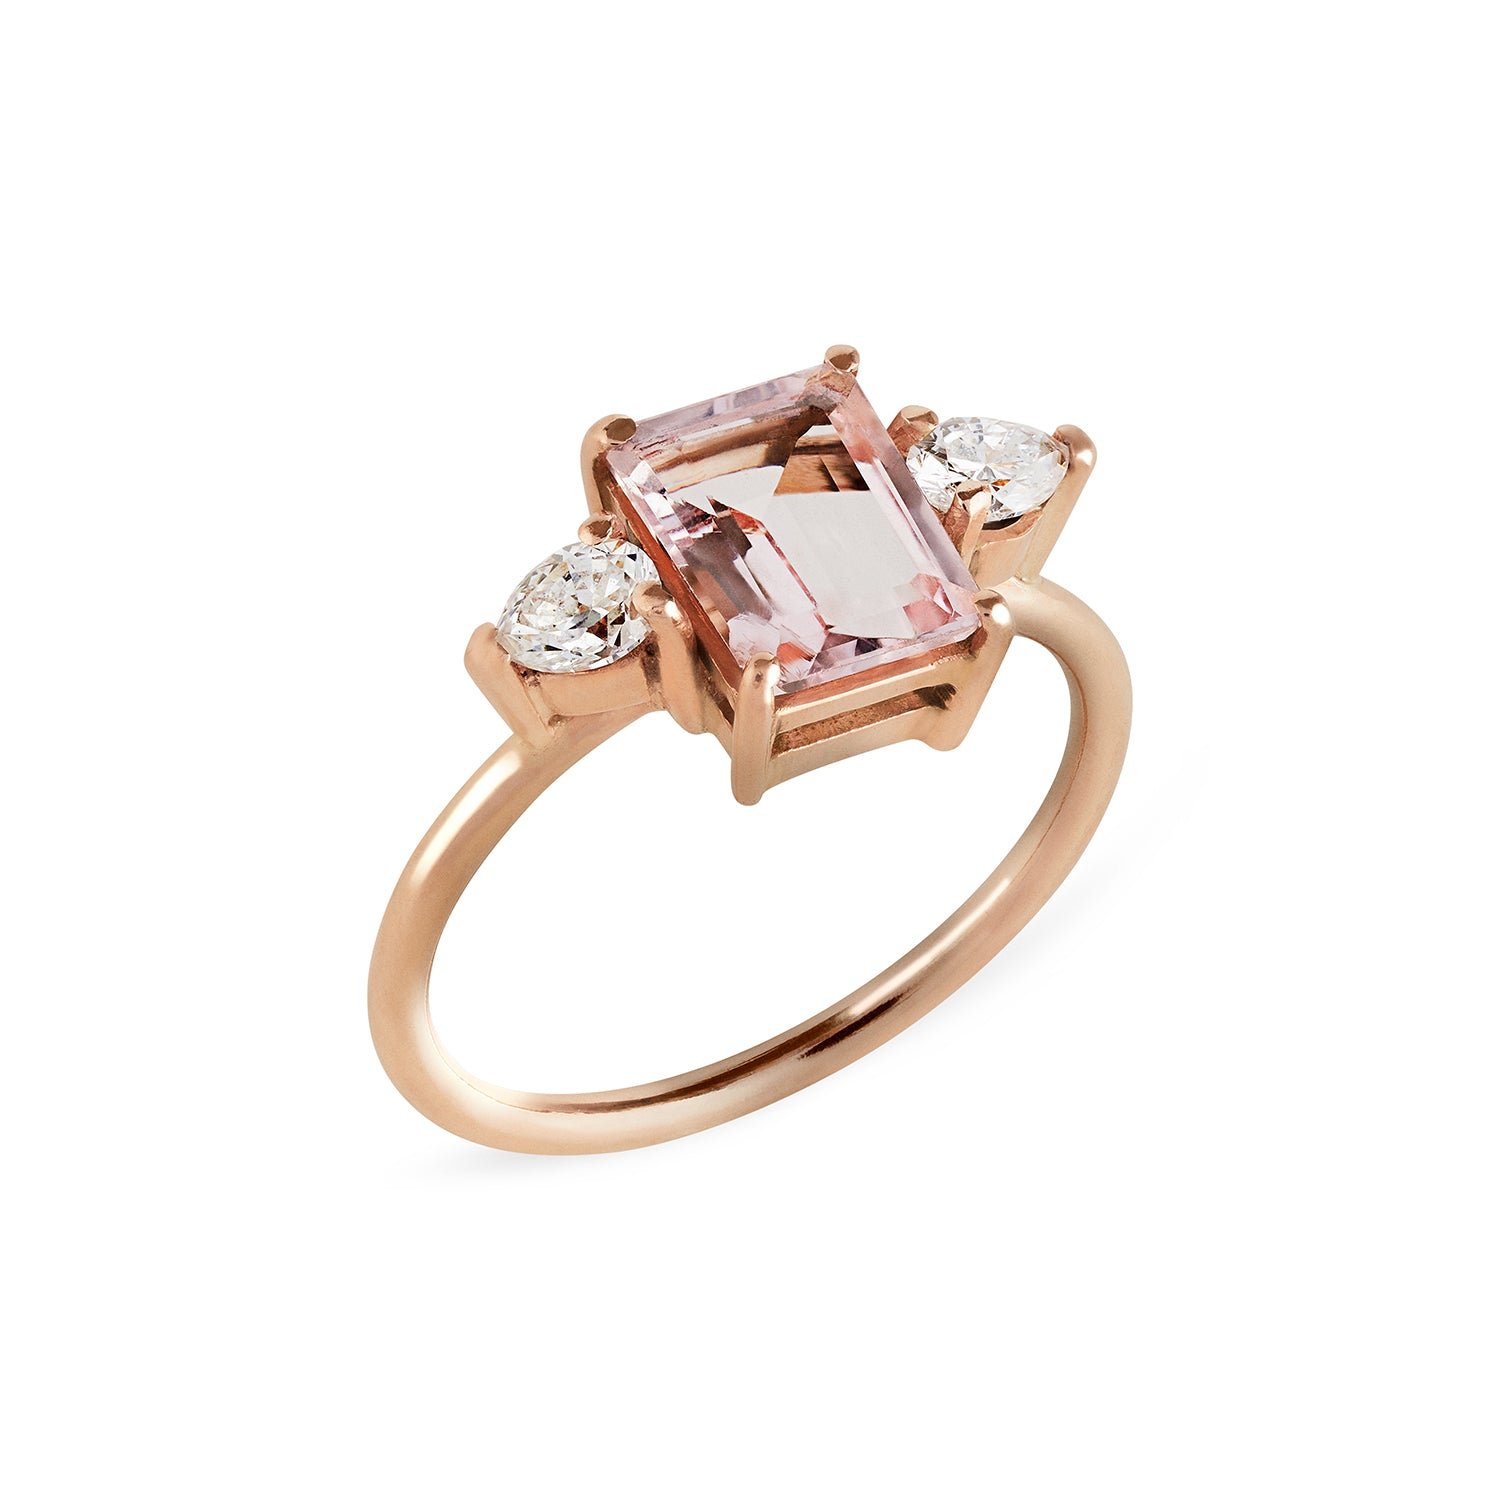 Morganite & Pear Diamond Trilogy RIng